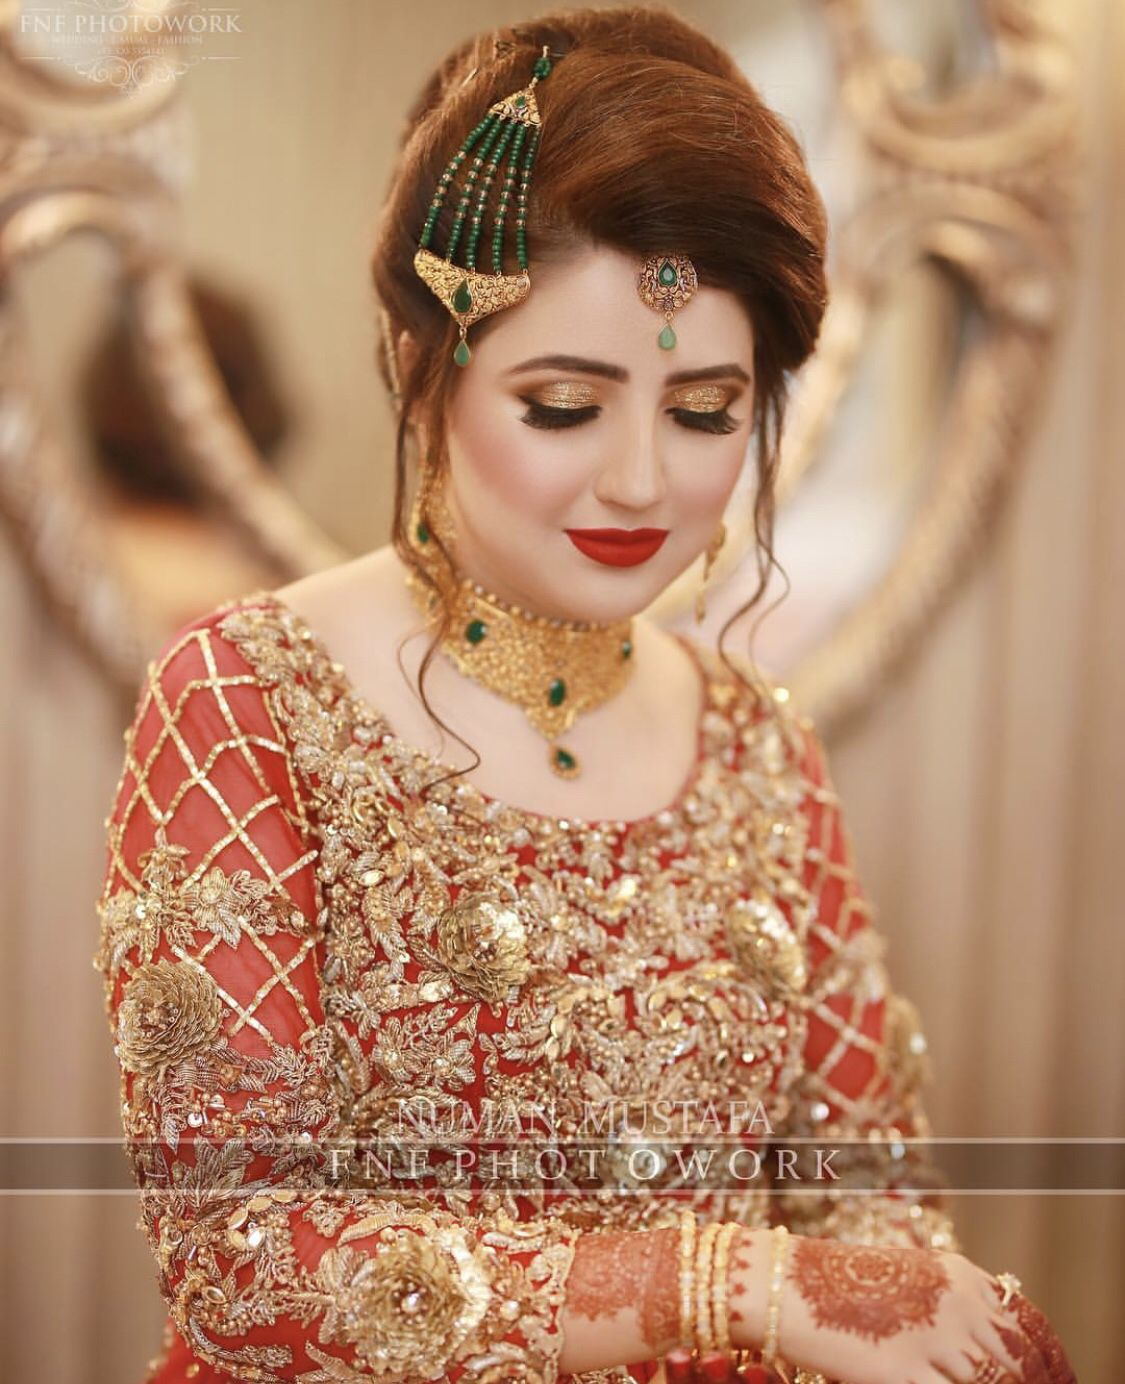 Pin by KS ️ on All AbOuT Weddings Pakistani bridal